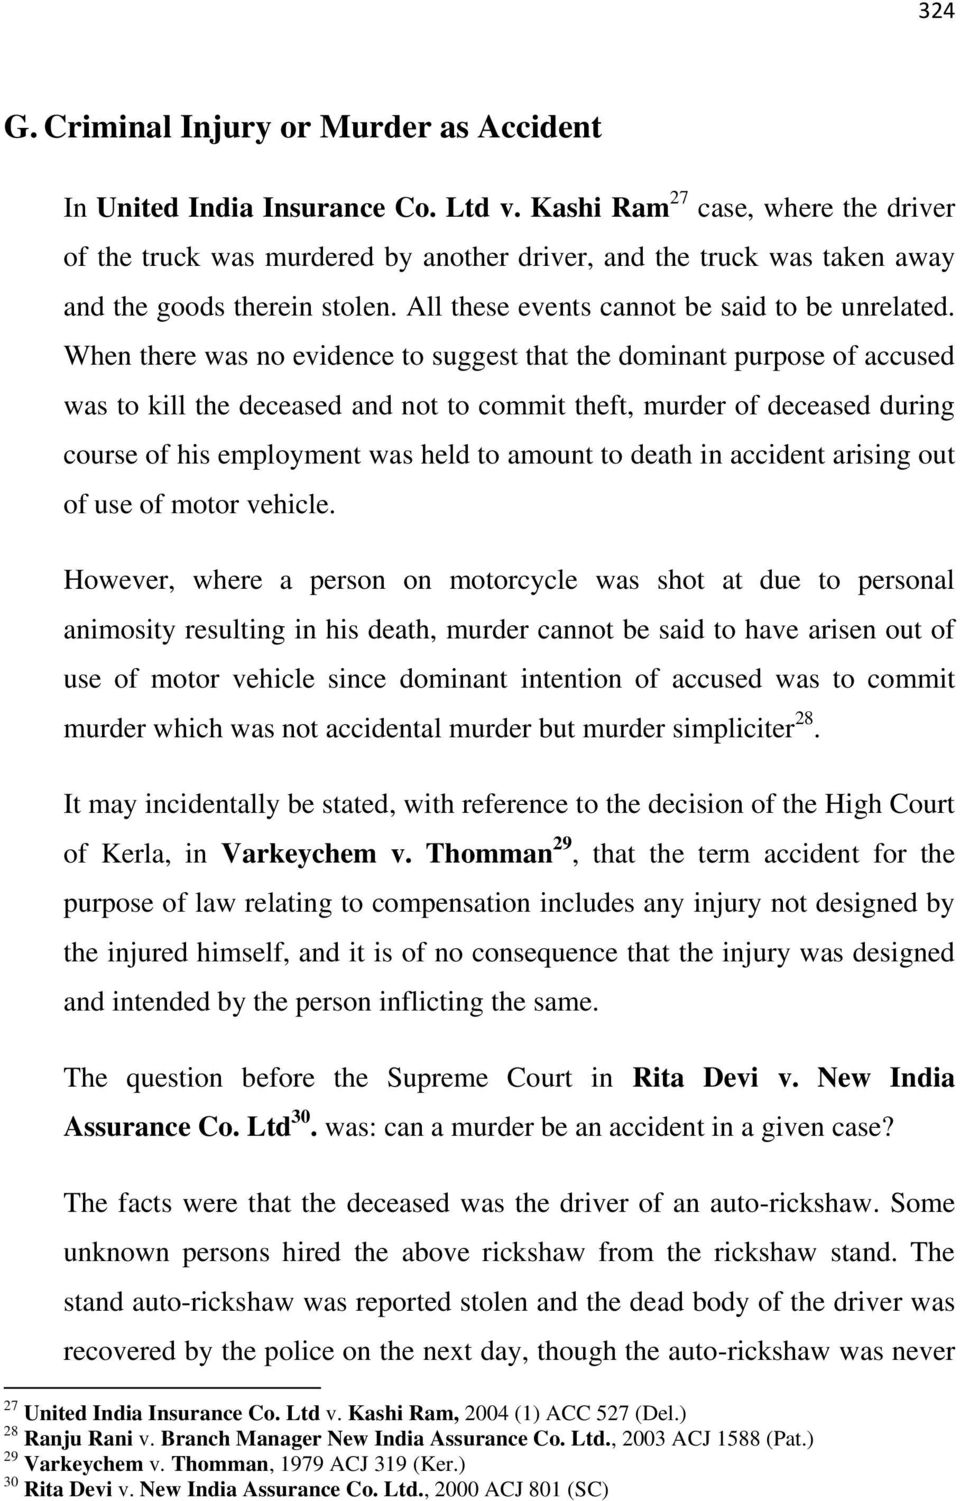 When there was no evidence to suggest that the dominant purpose of accused was to kill the deceased and not to commit theft, murder of deceased during course of his employment was held to amount to